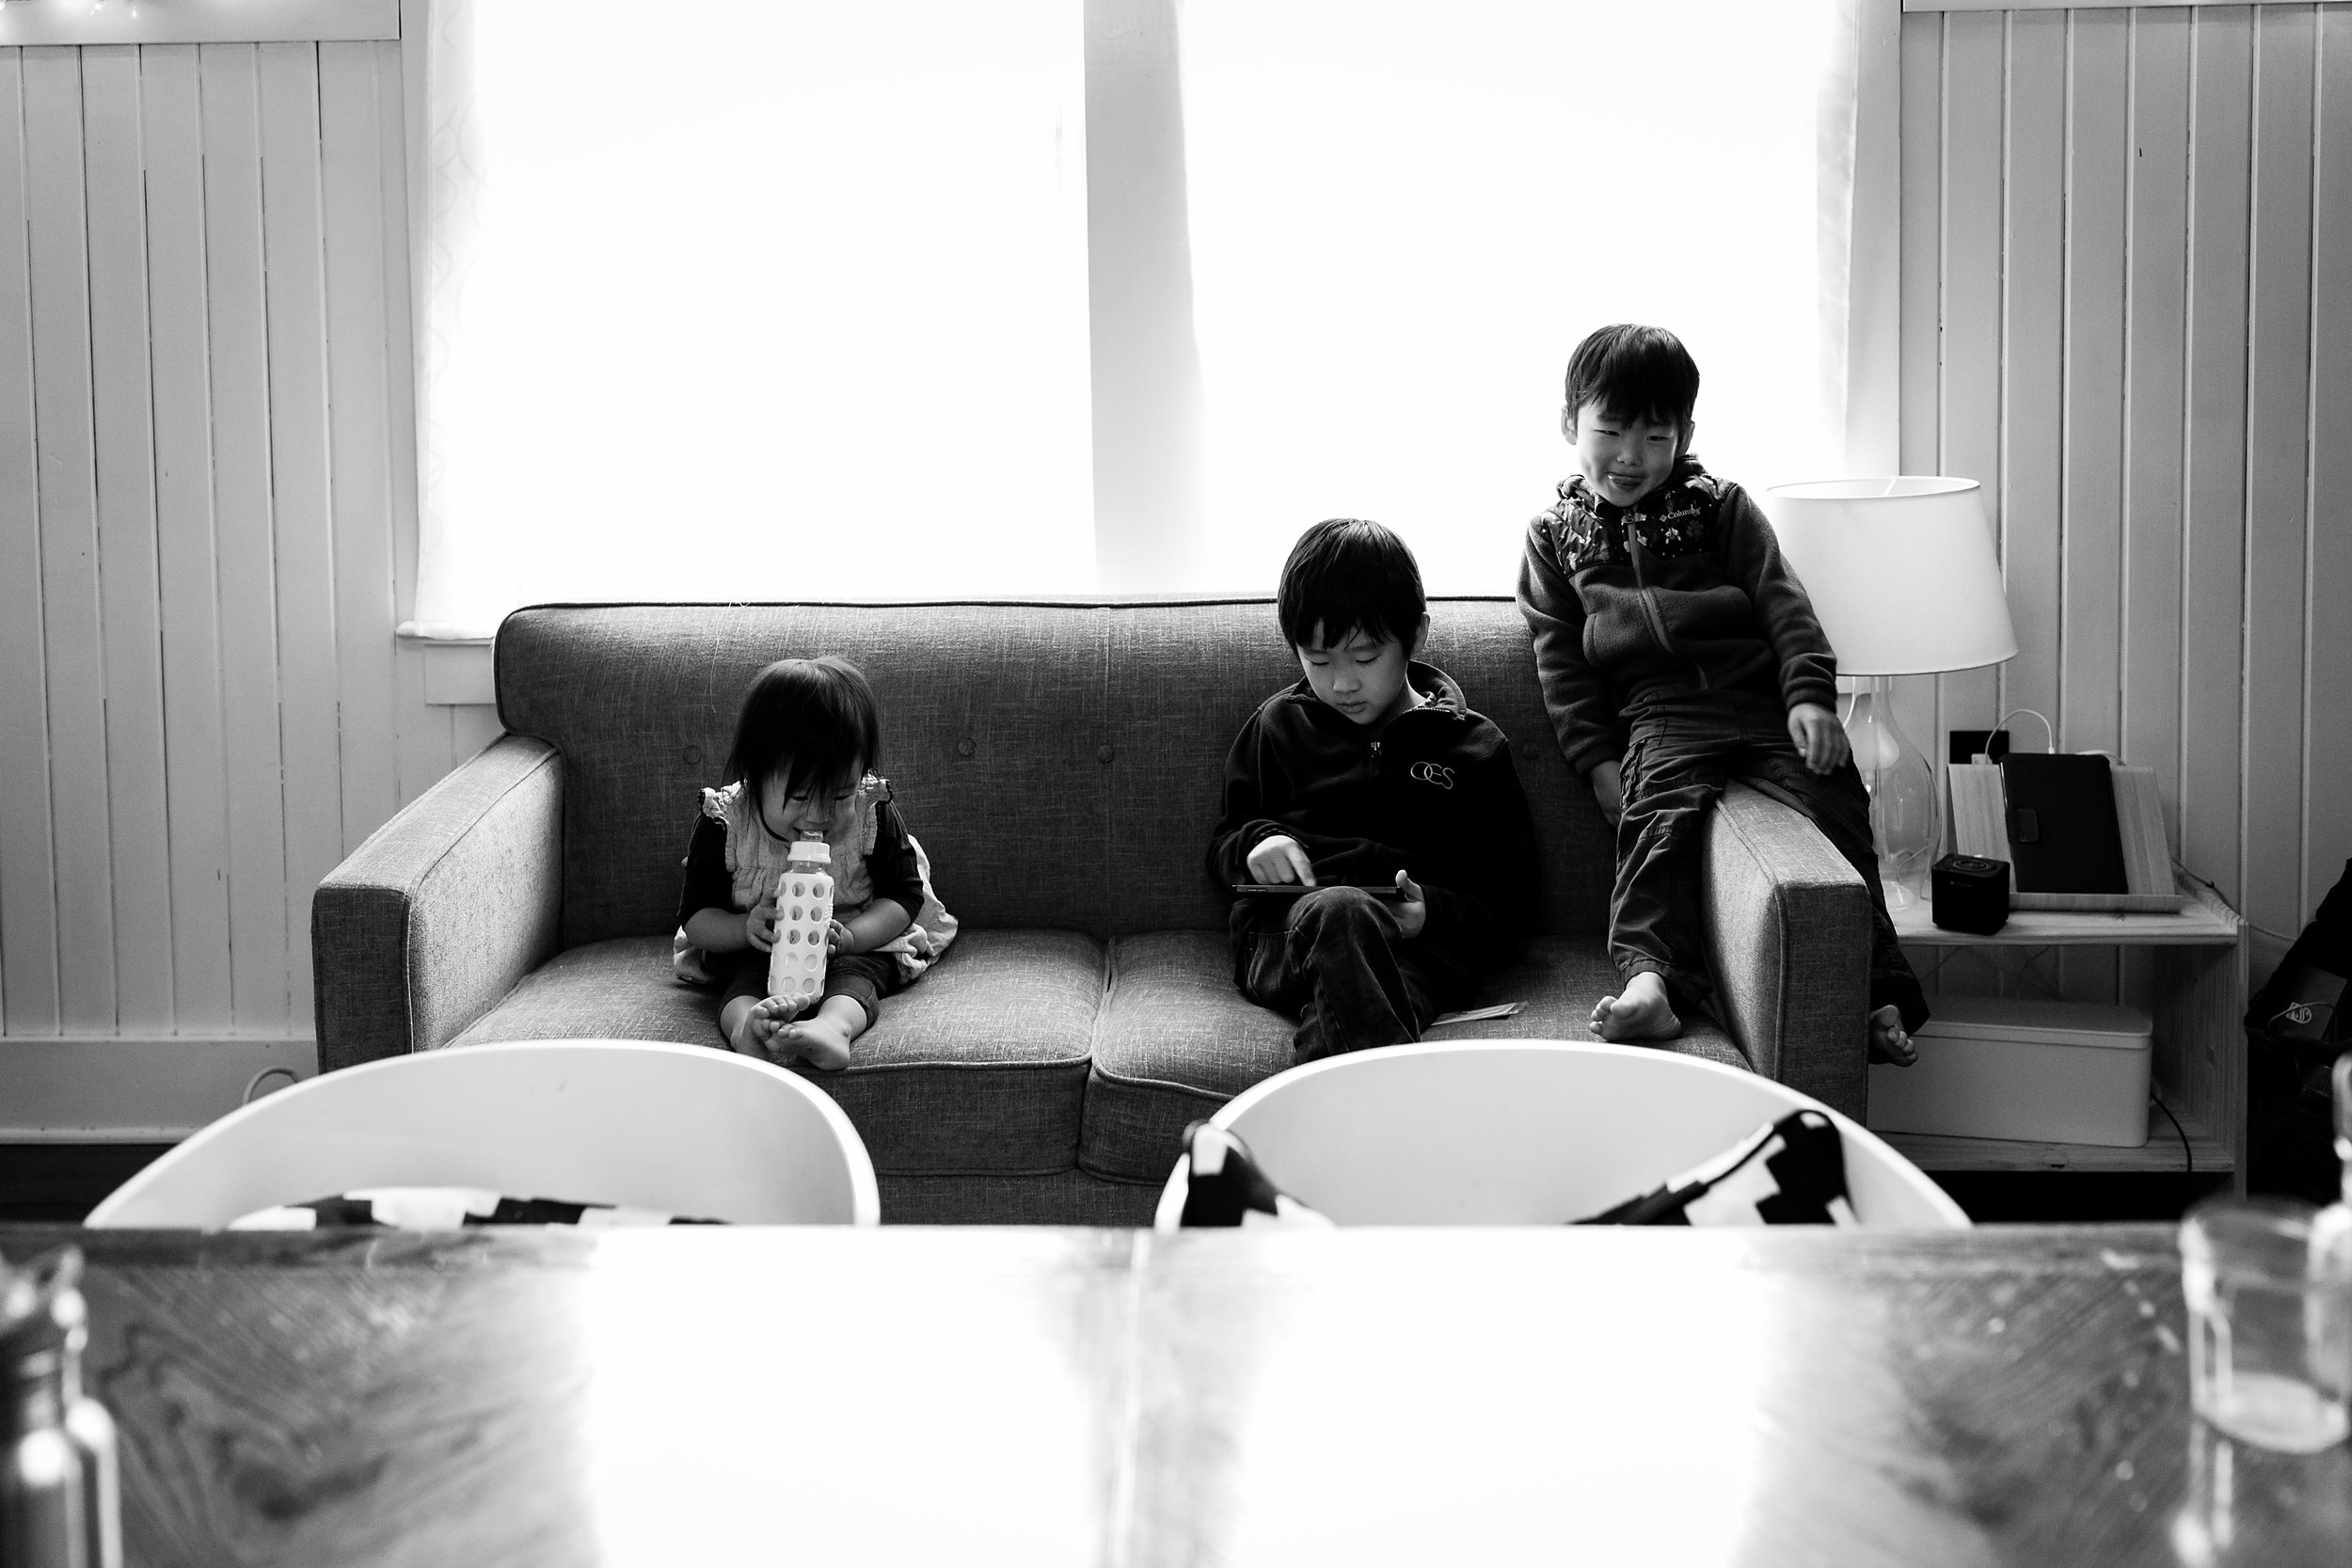 girl drinking from bottle, boy playing on iPad, other boy smiling